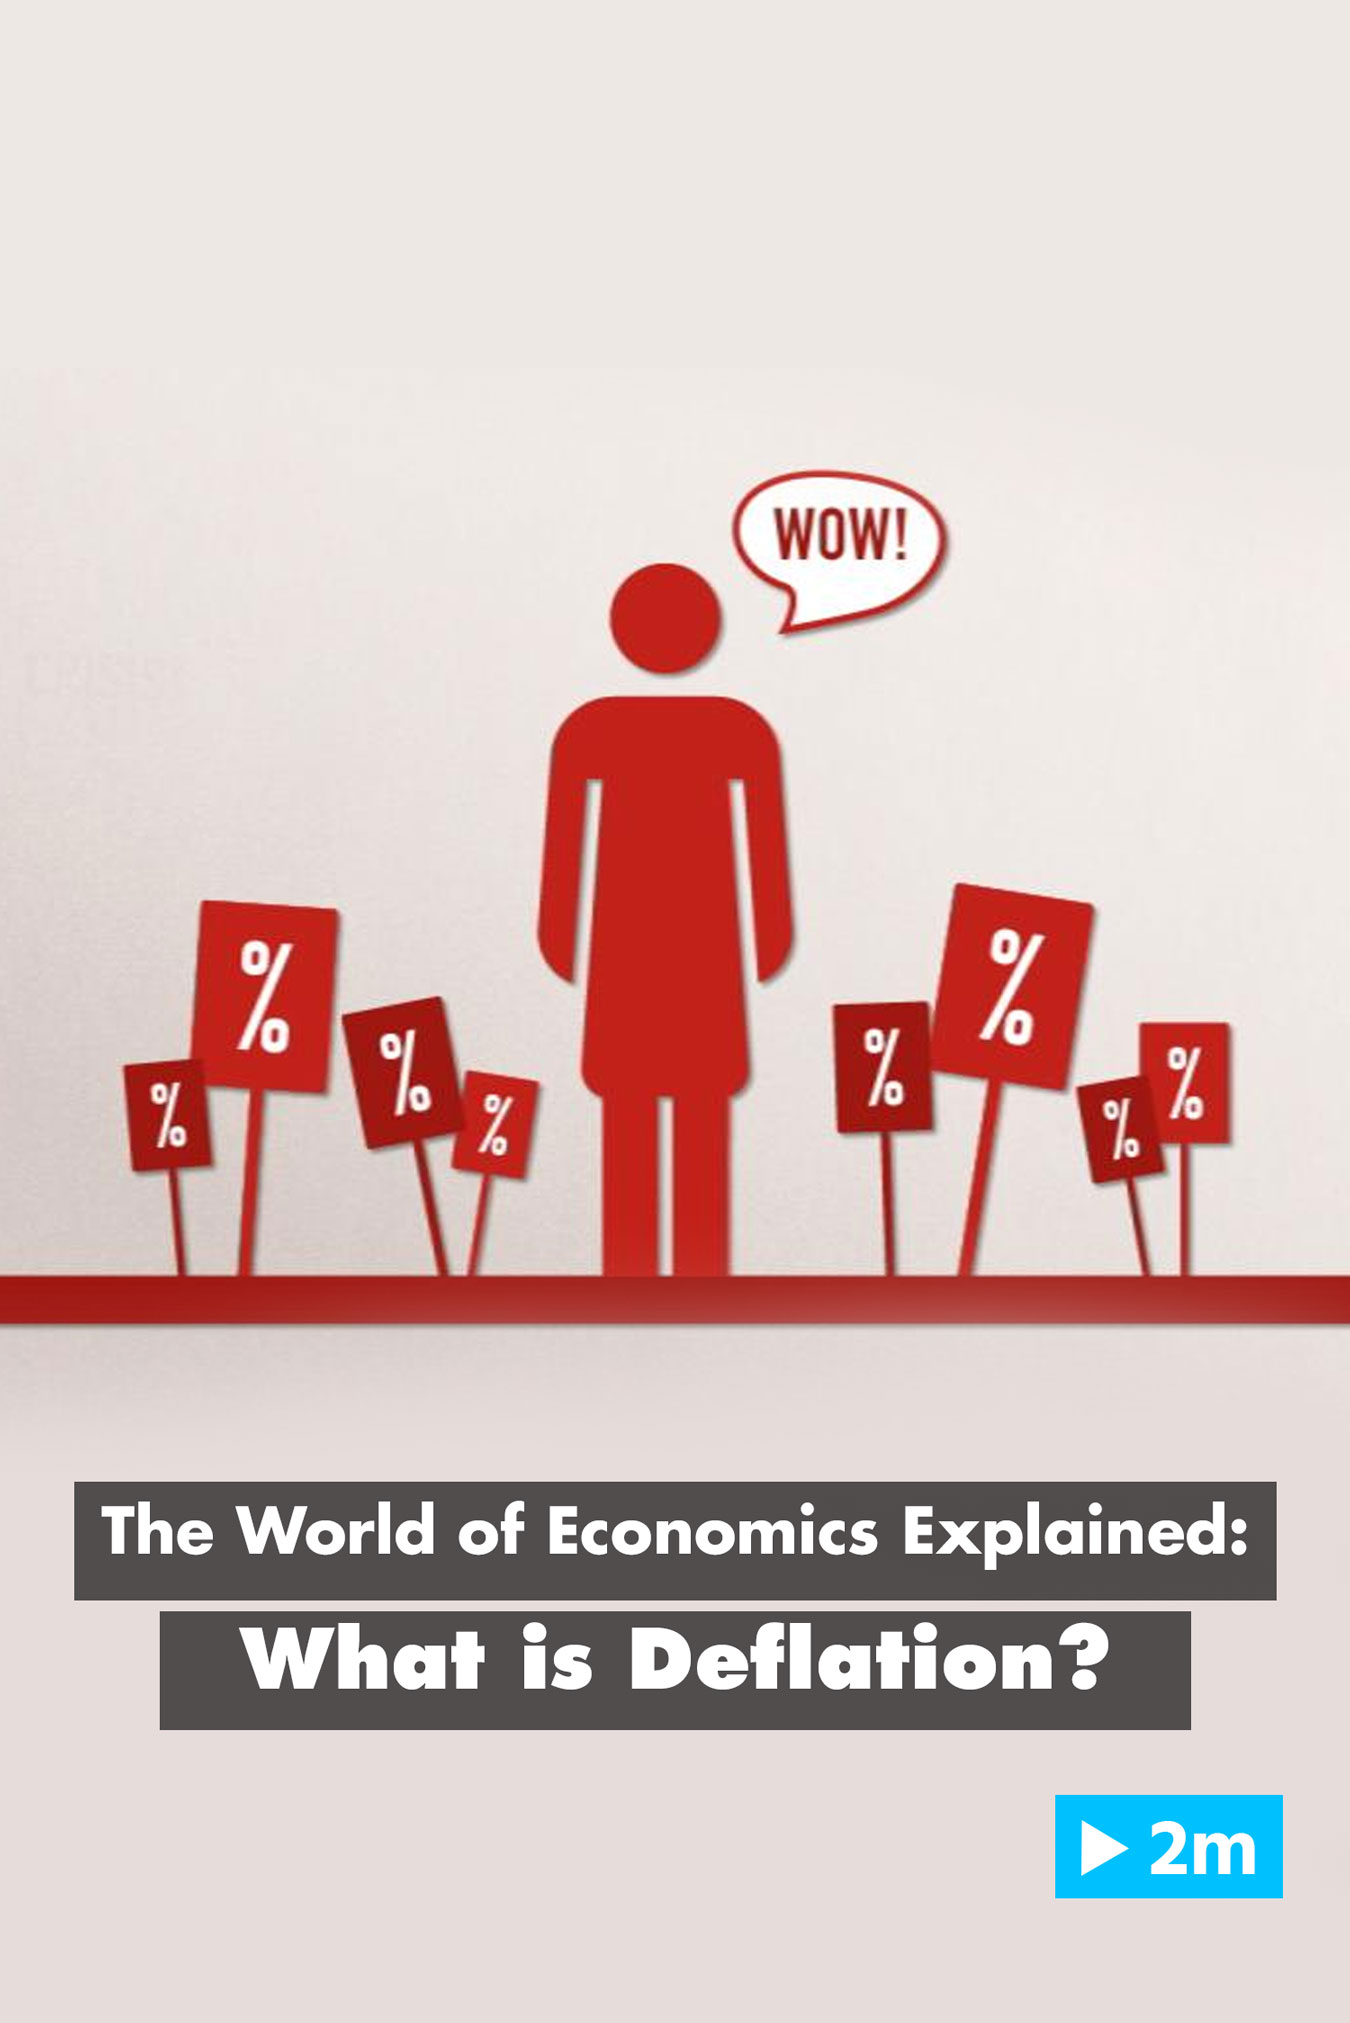 The World of Economics Explained: What is deflation?